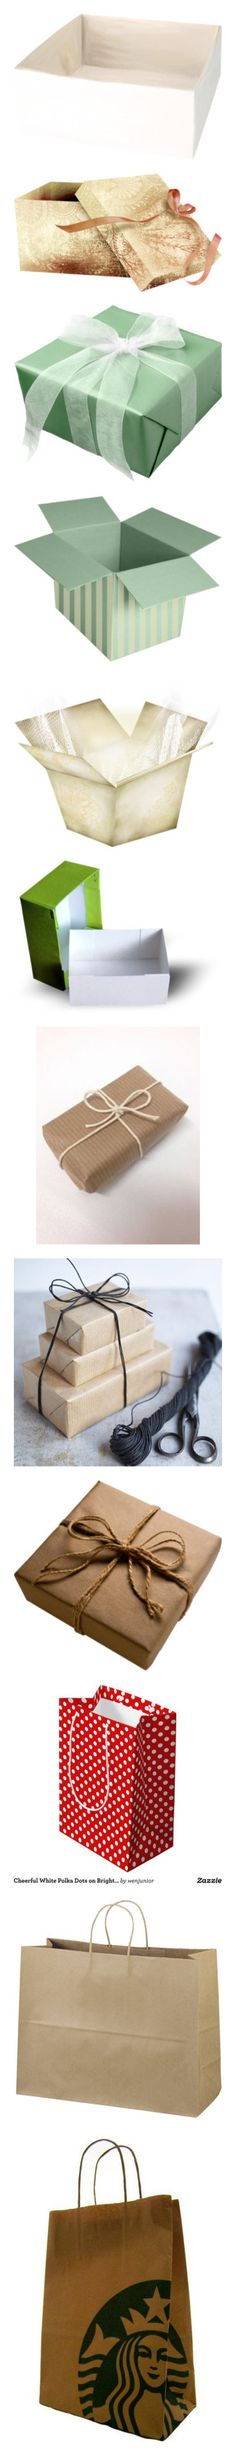 """""""Gift/ Shopping Bags"""" by kbarkstyle ❤ liked on Polyvore featuring presents, boxes, christmas, fillers, gifts, filler, green, decor, bags and objects"""